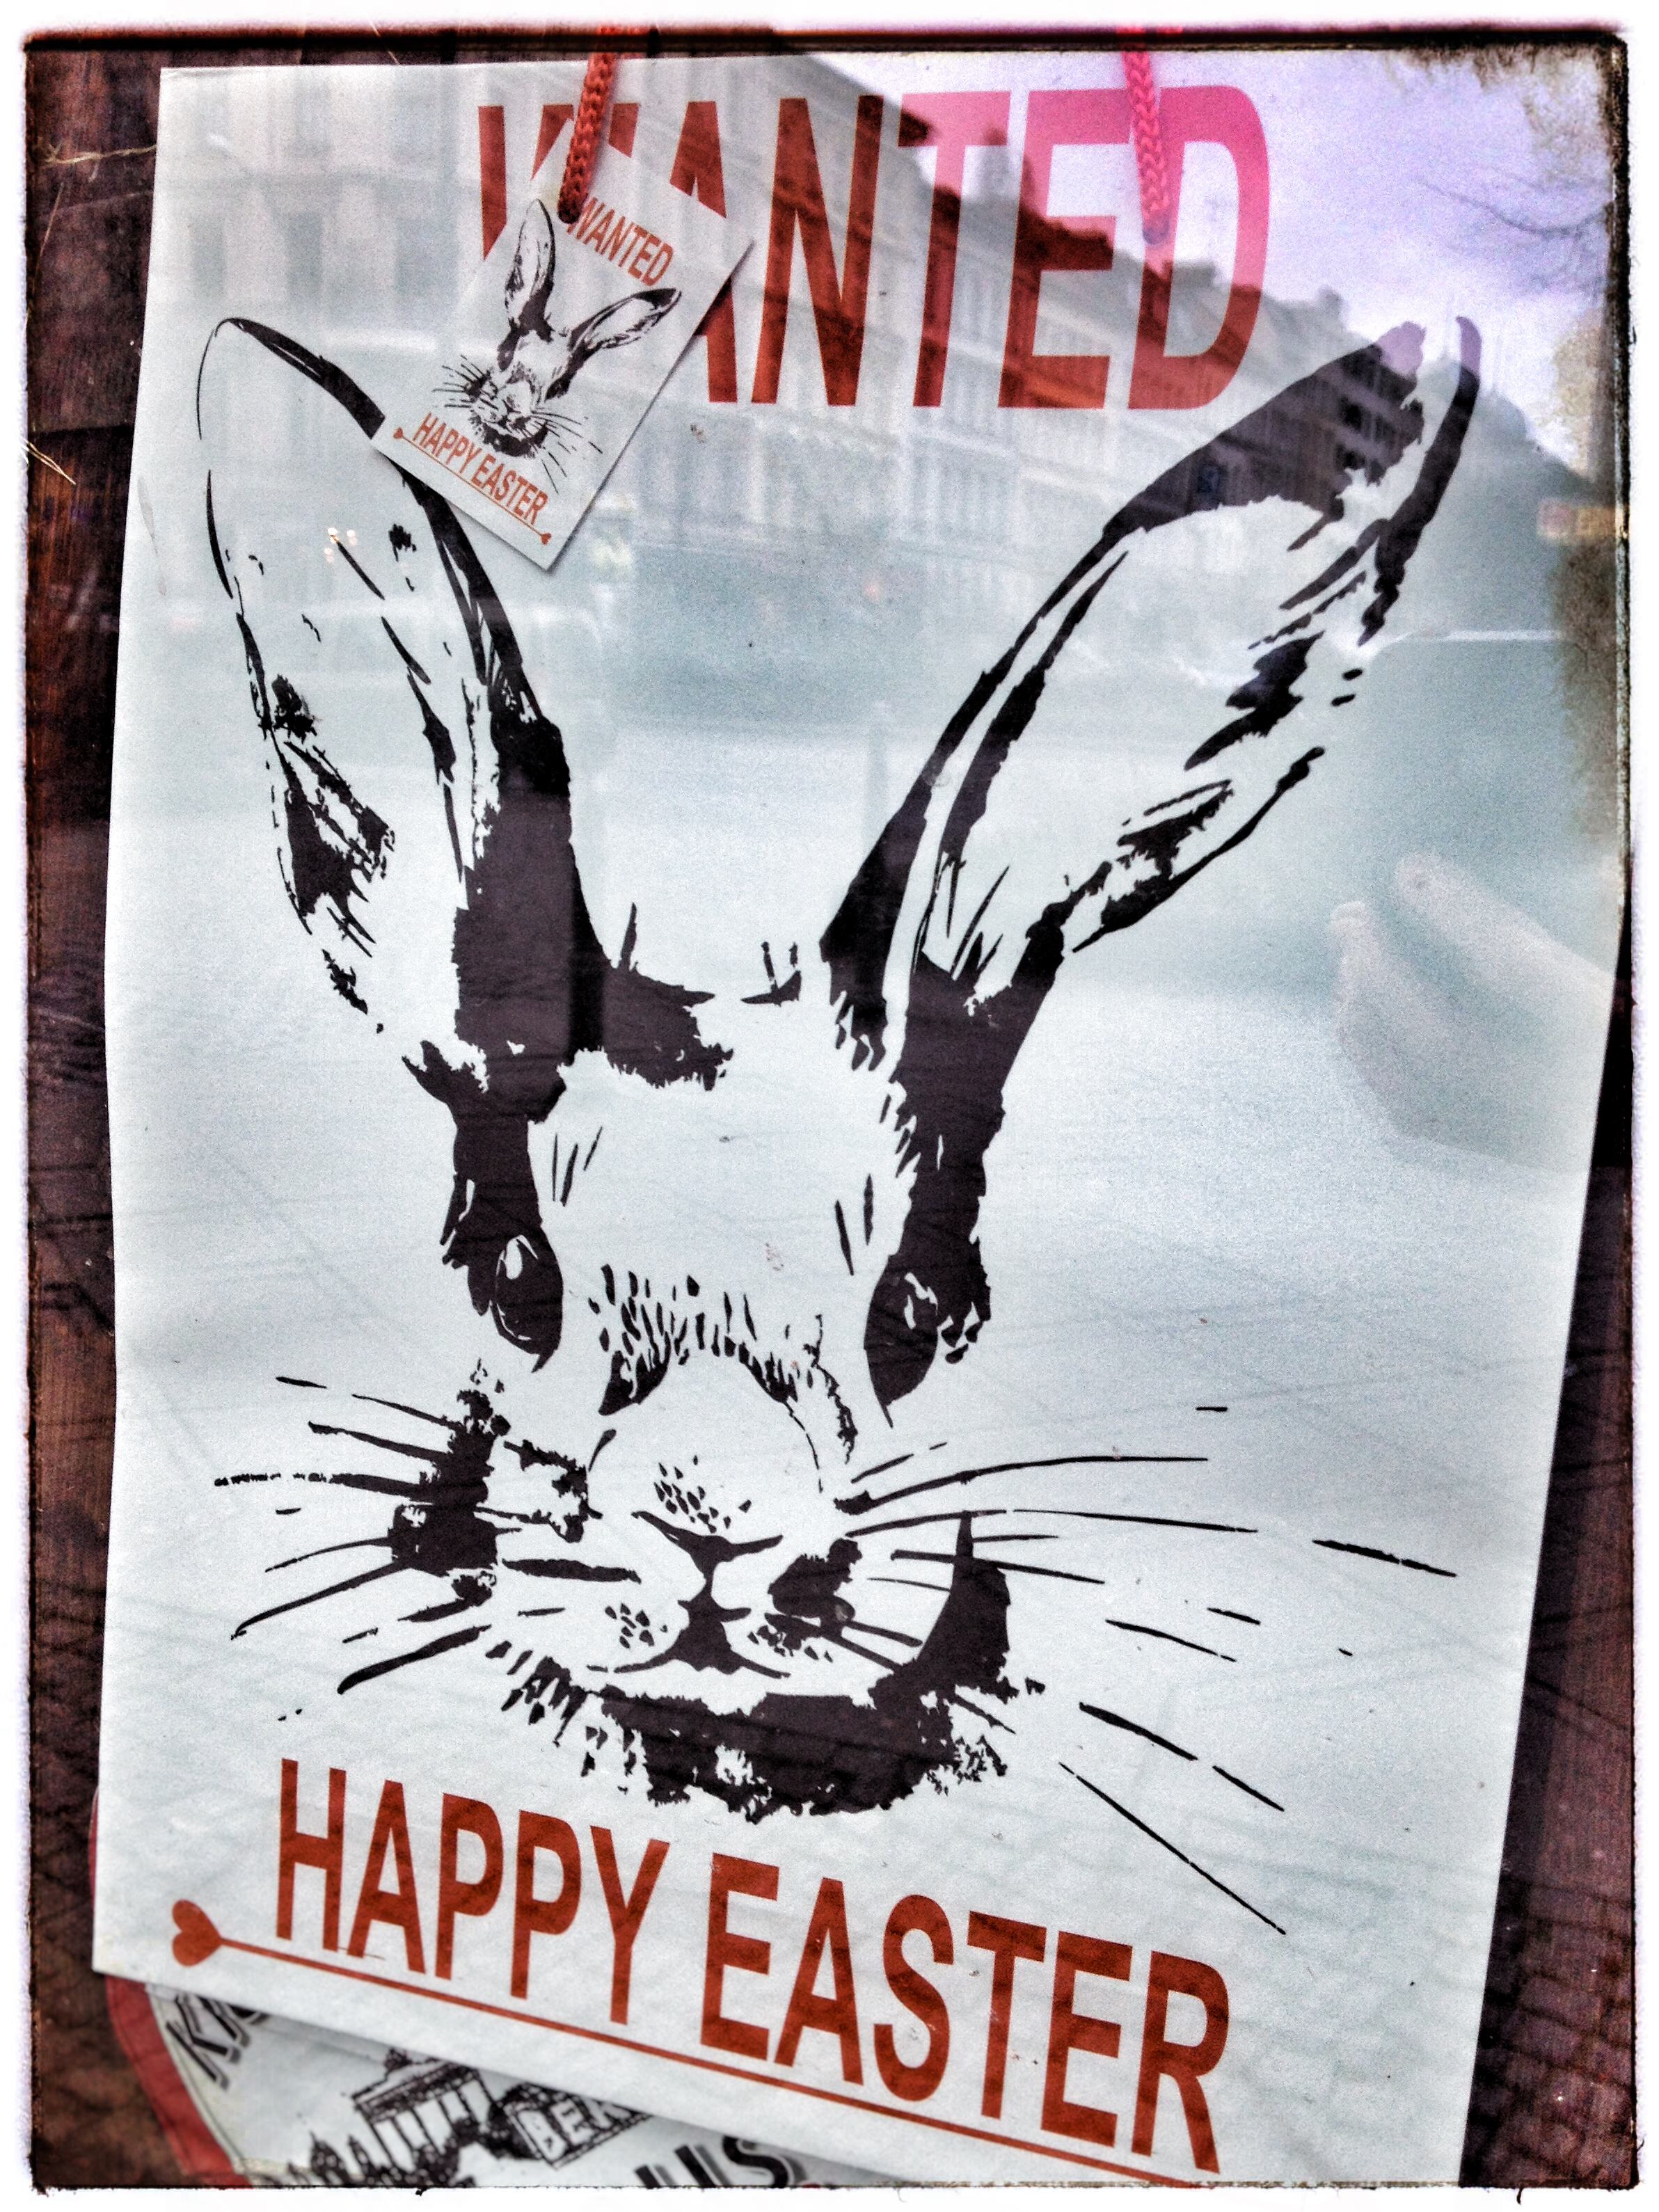 Happy Easter, Wanted, Frohe Ostern